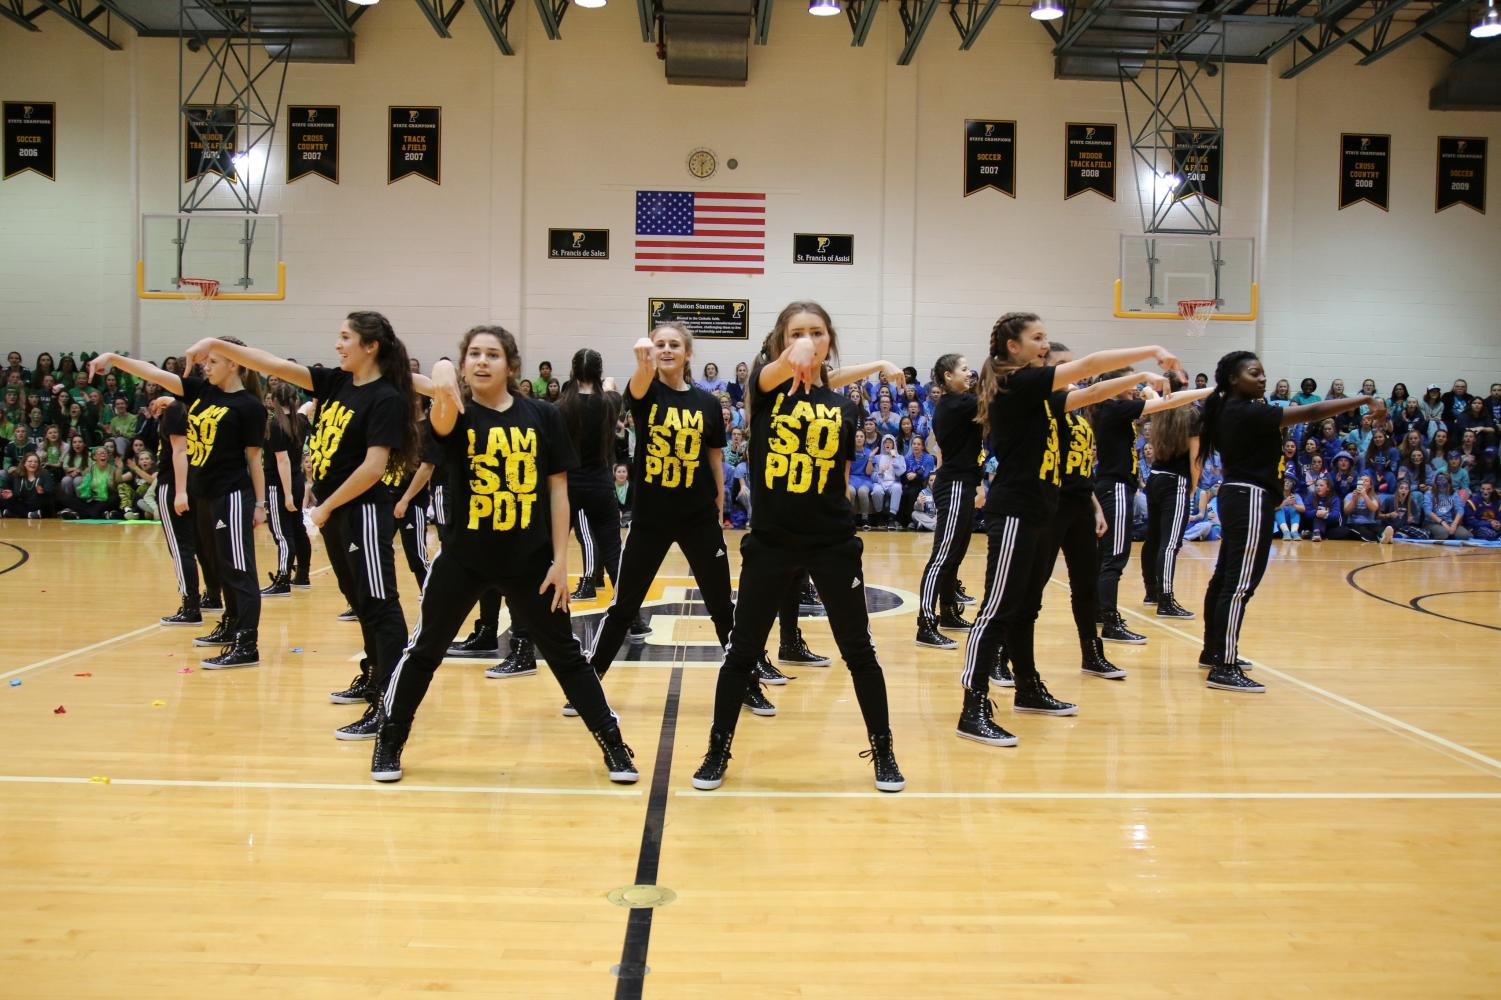 The Padua Dance Team mid-performance at the pep rally.